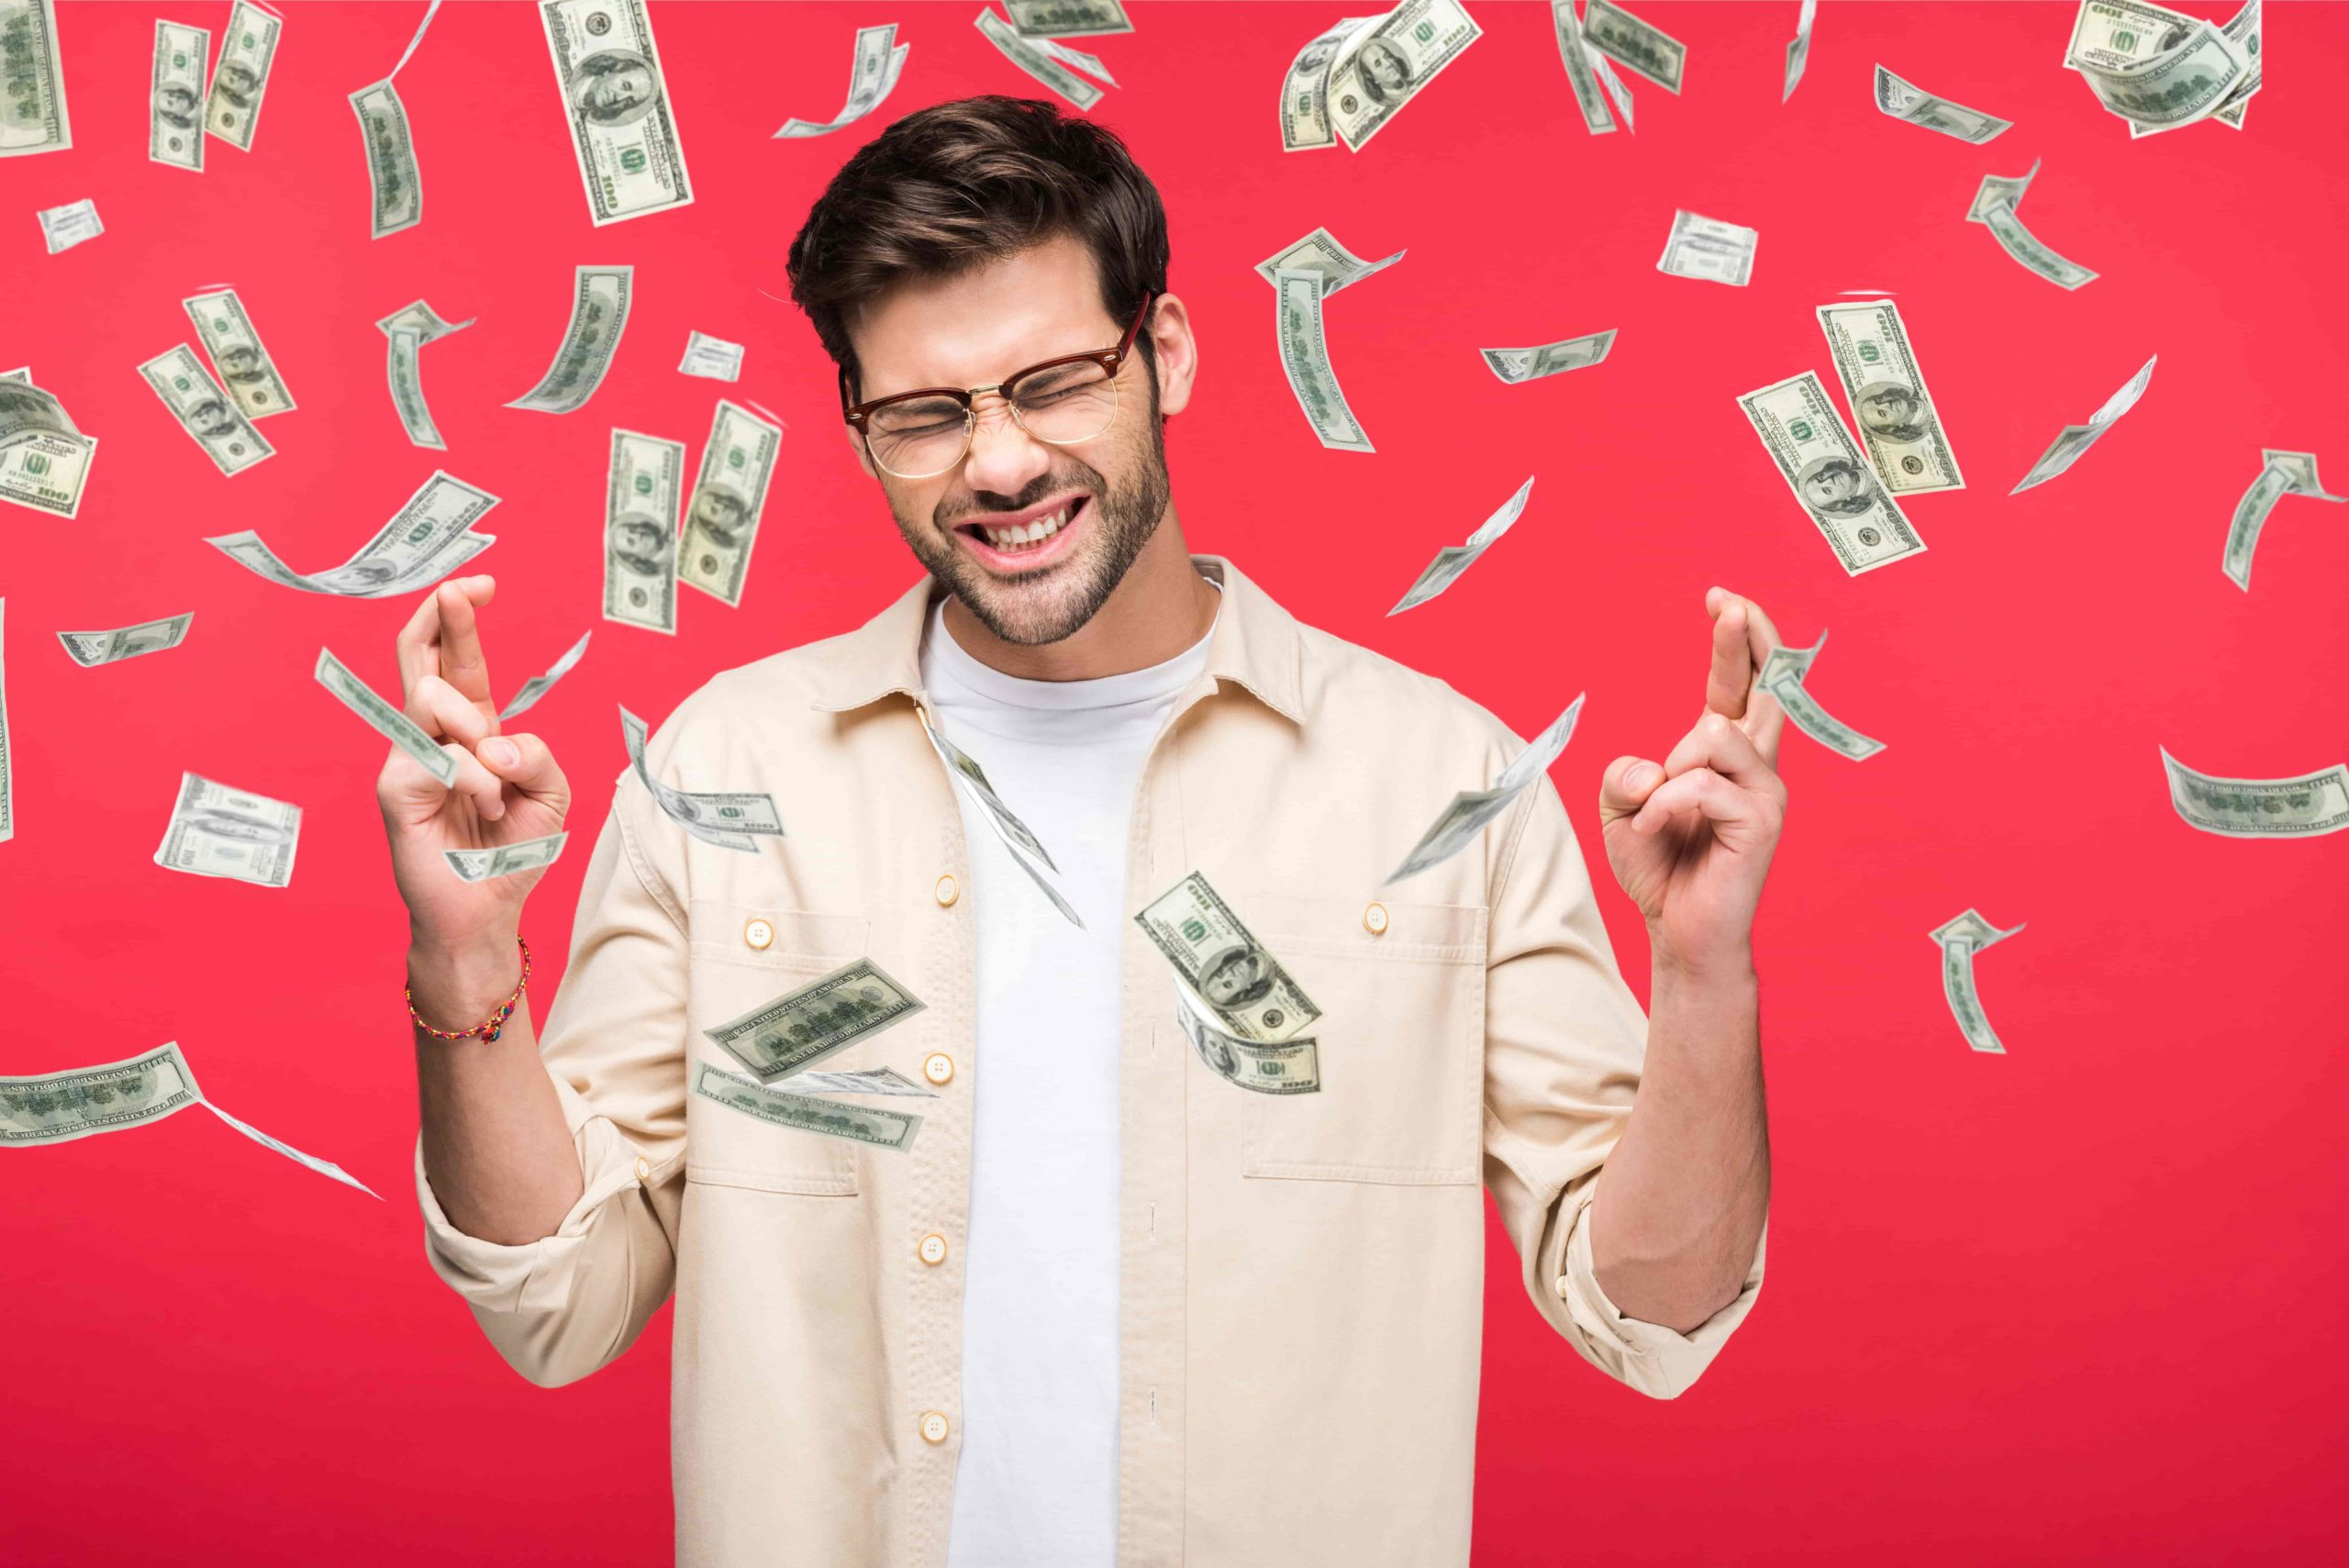 Man crossing fingers with money shower